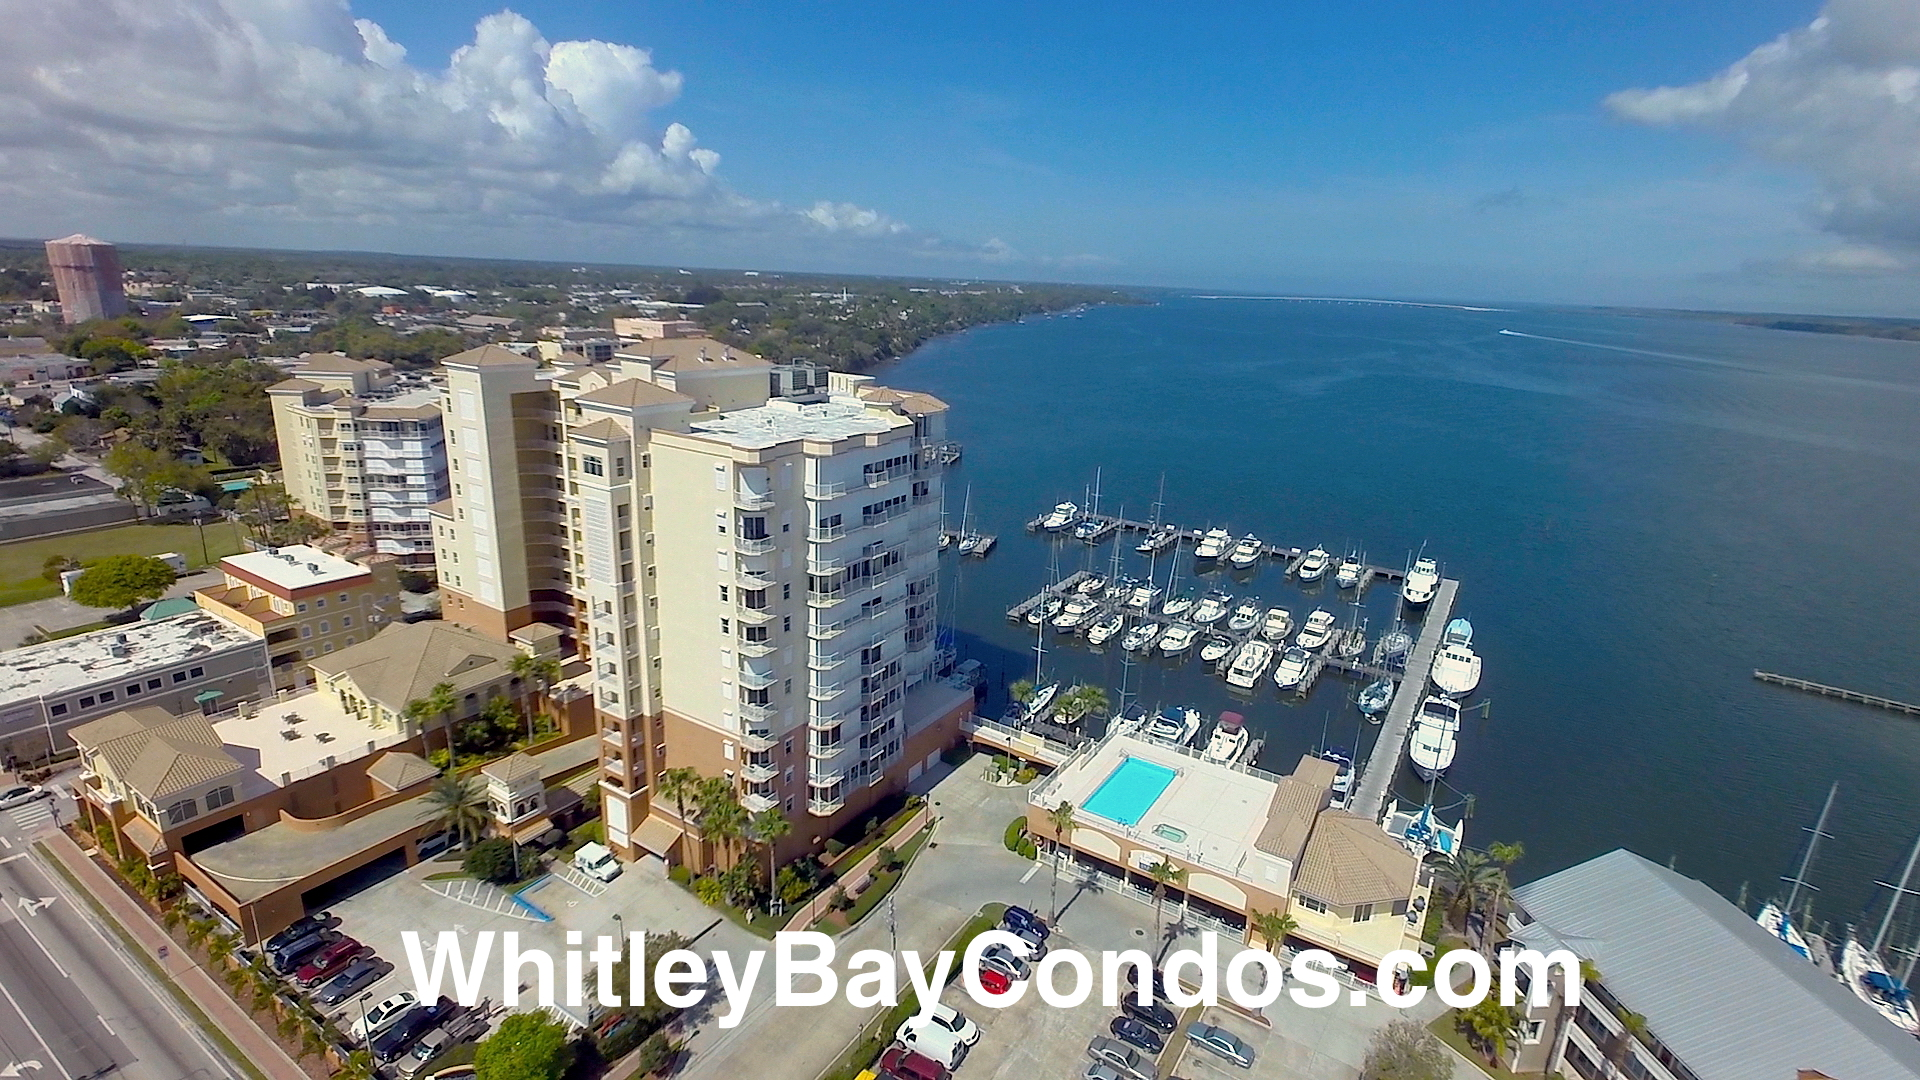 Whitley bay condos info and available units for Waves swimming pool whitley bay